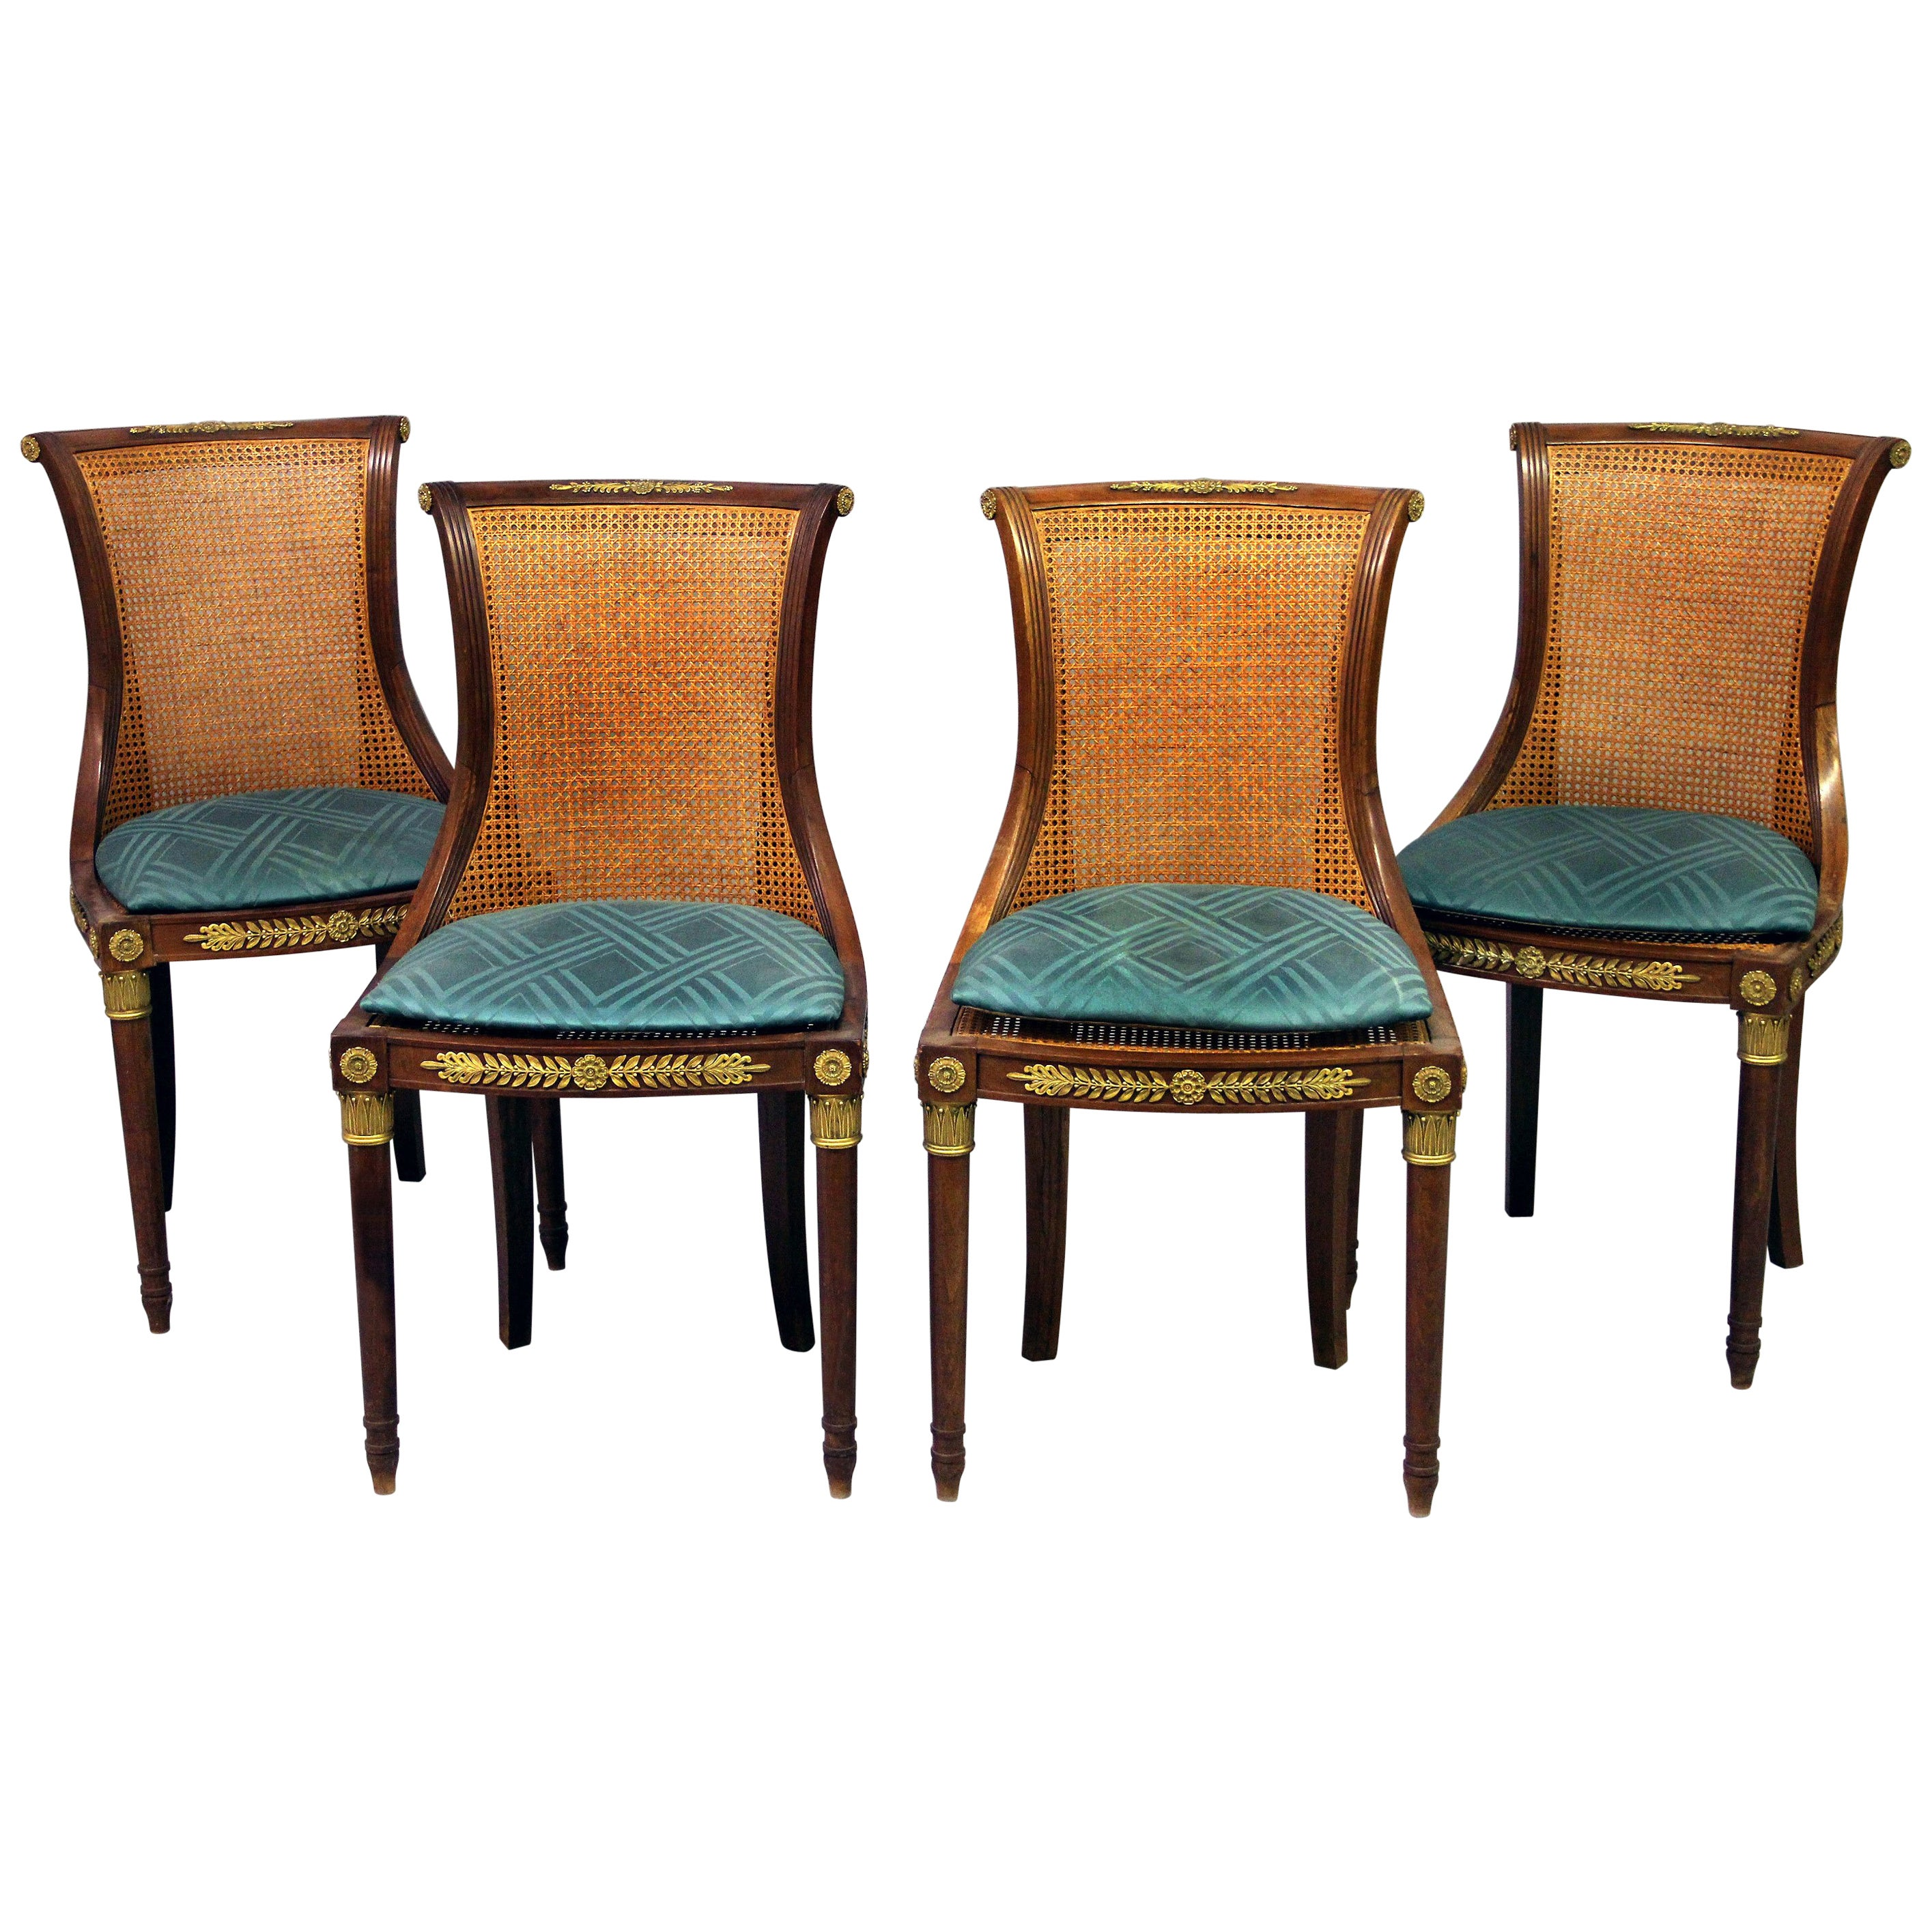 Set of Four Early 20th Century Gilt Bronze Mounted Salon Chairs